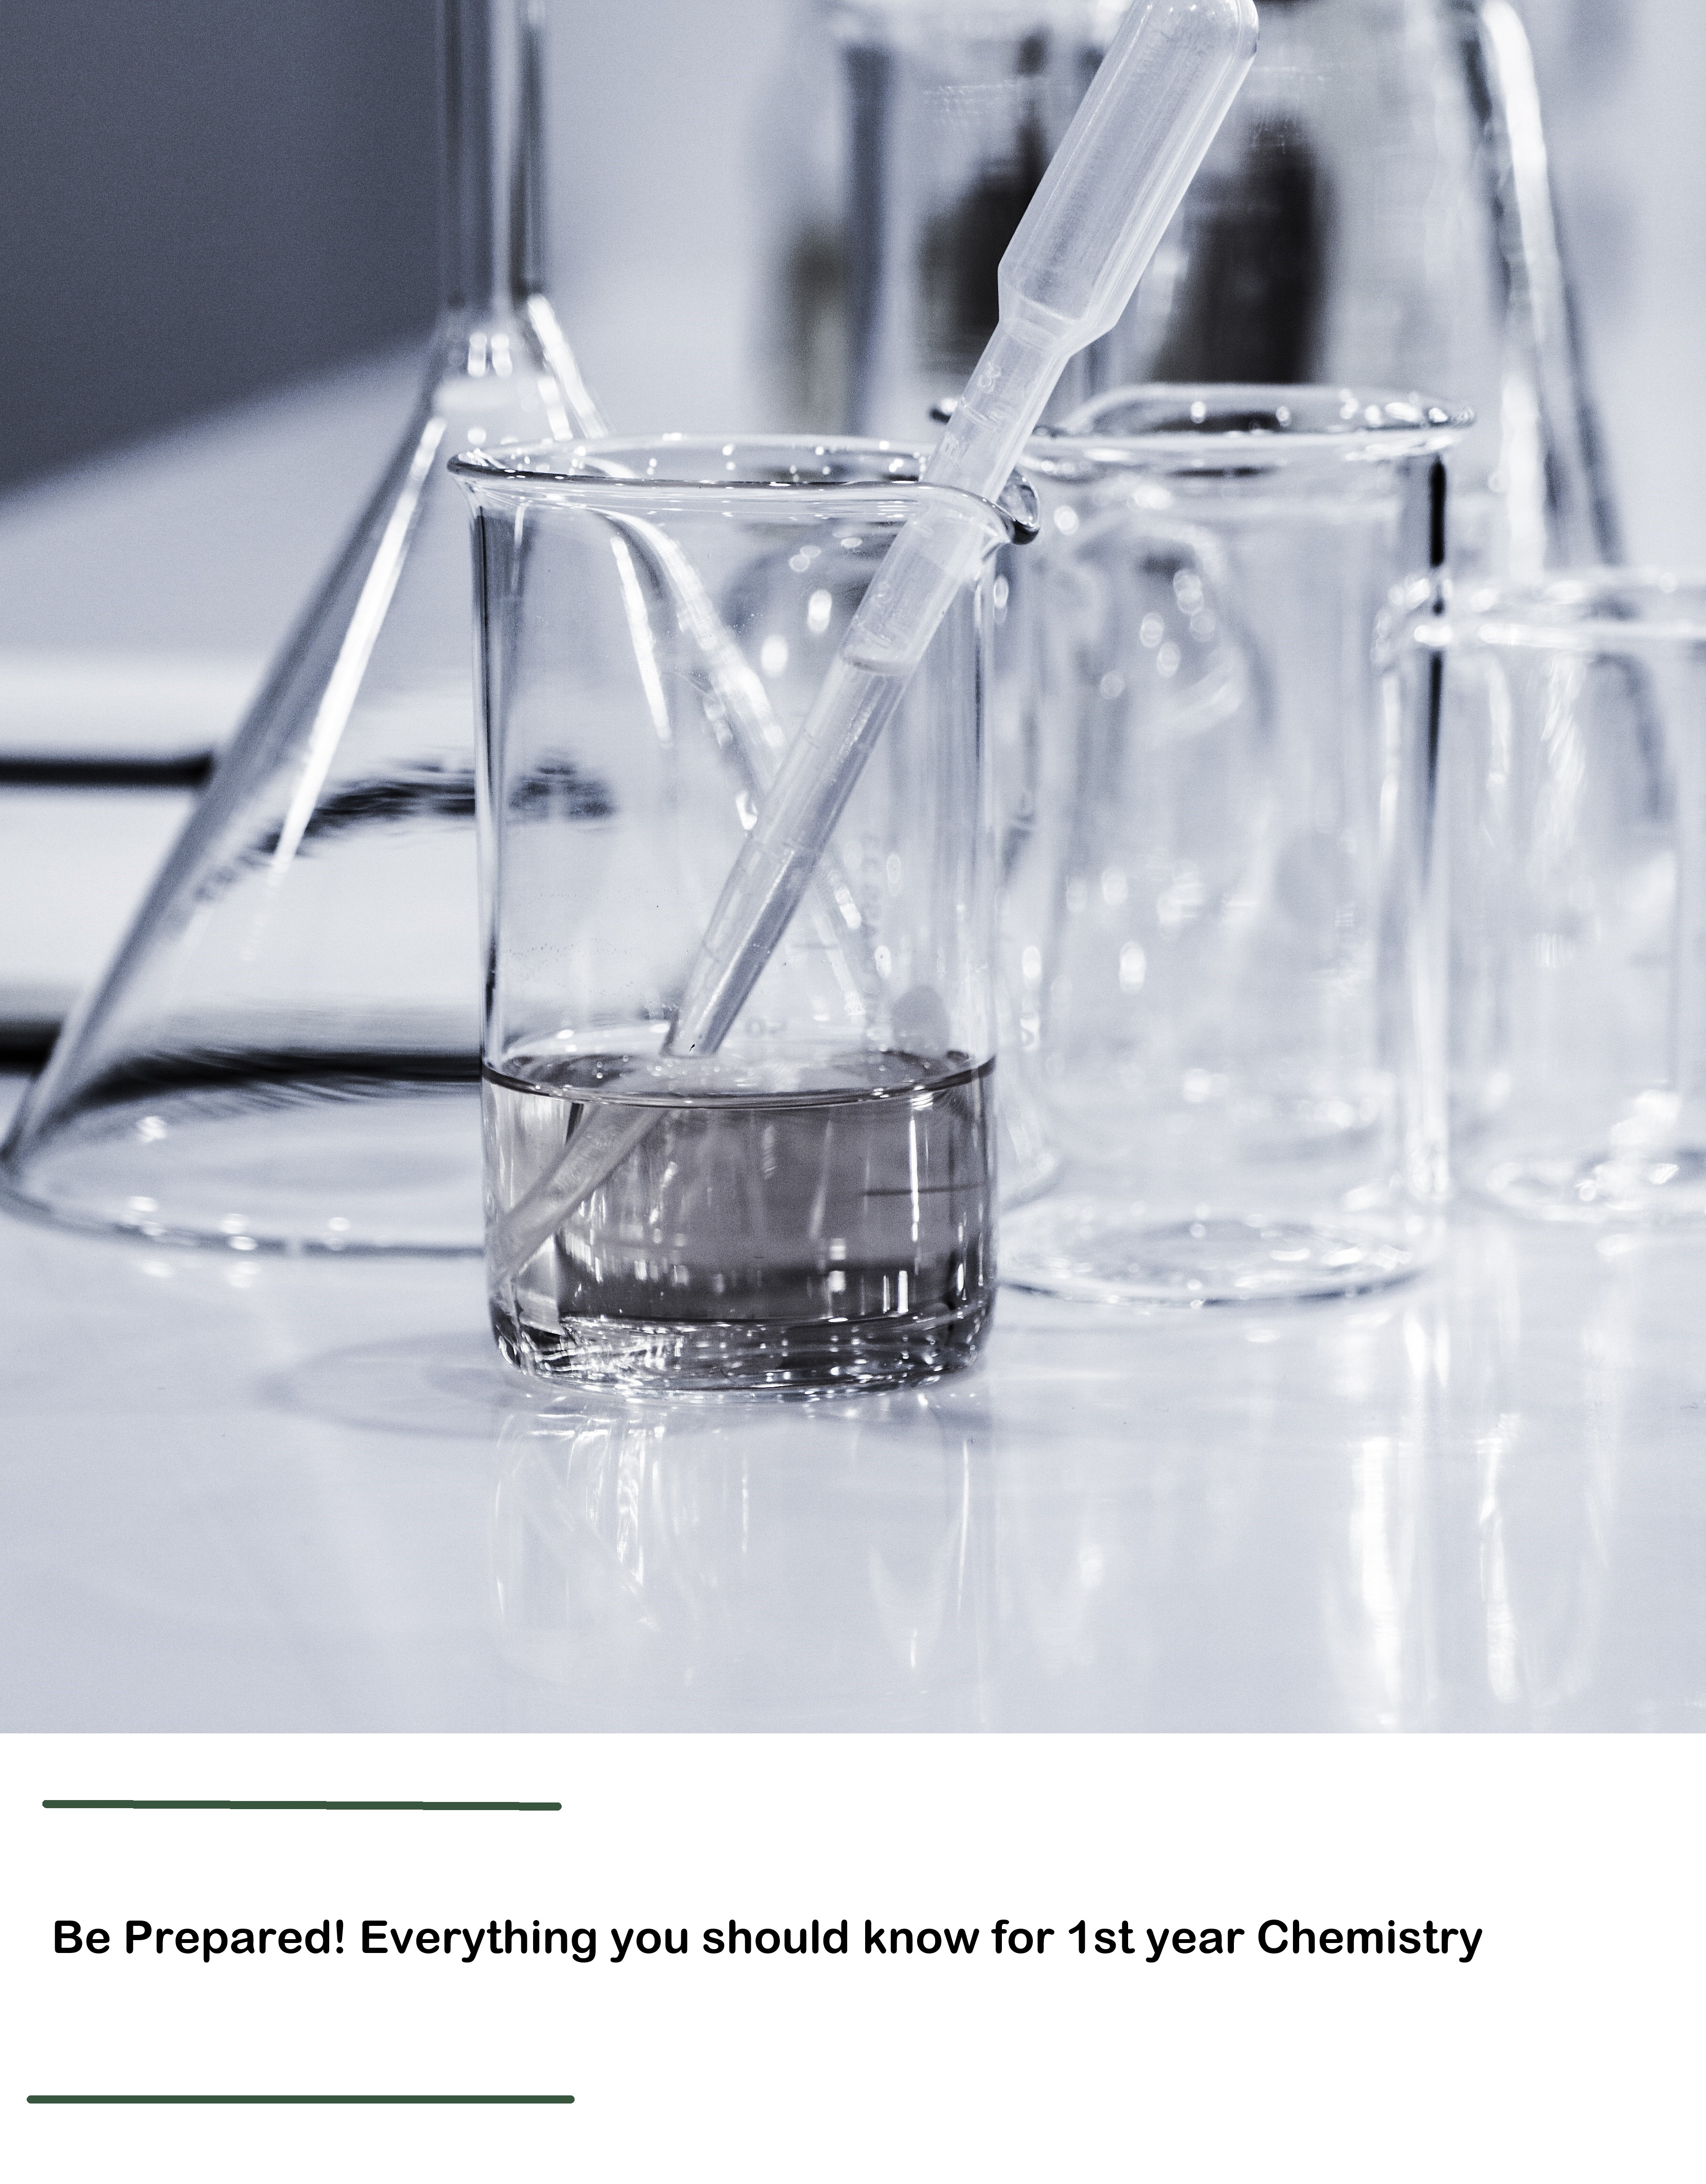 Cover image for Be Prepared! Everything you should know for 1st year Chemistry